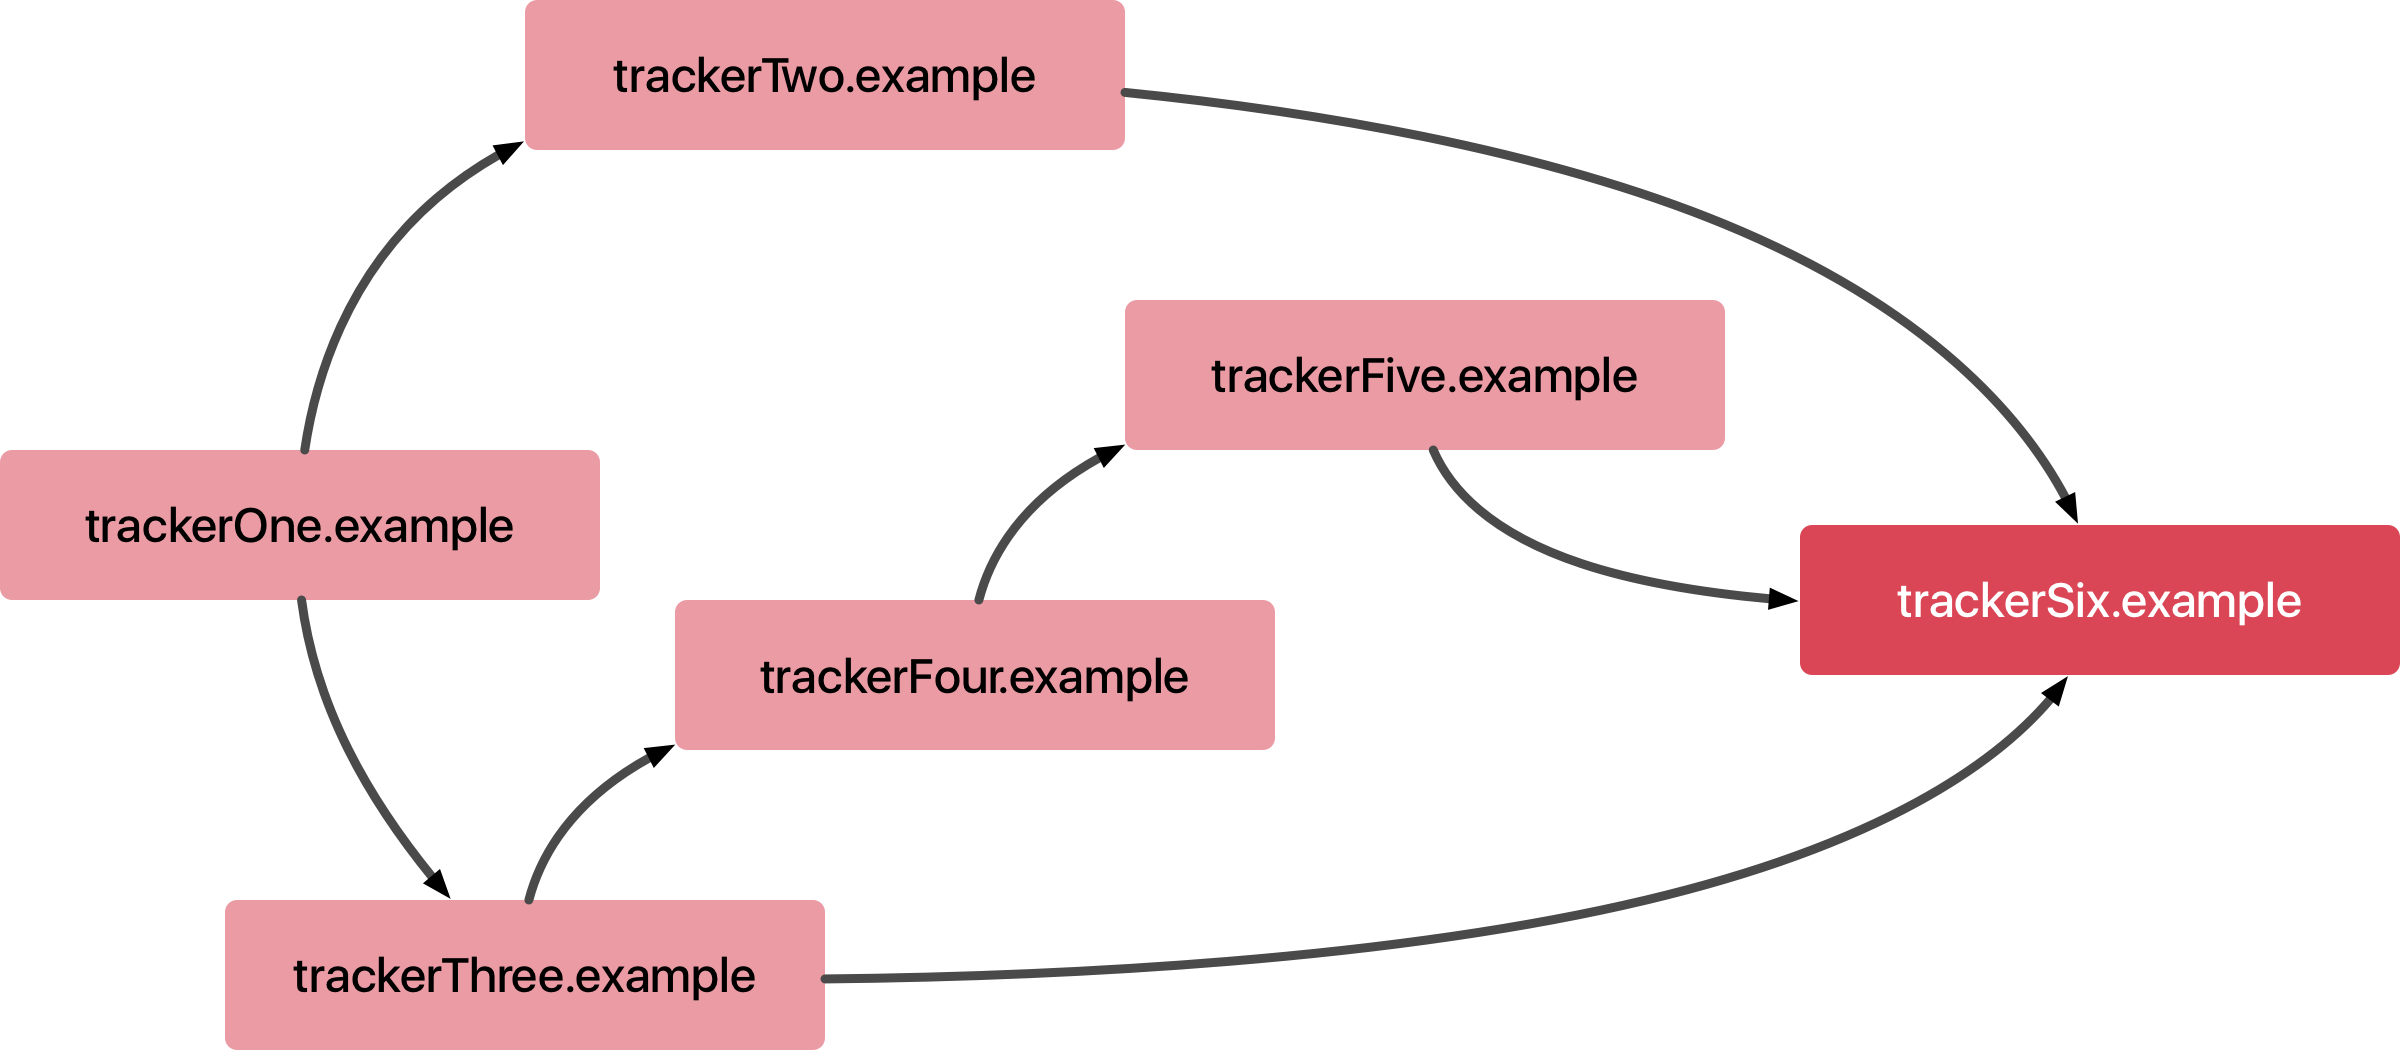 Cross-site tracker collusion diagram